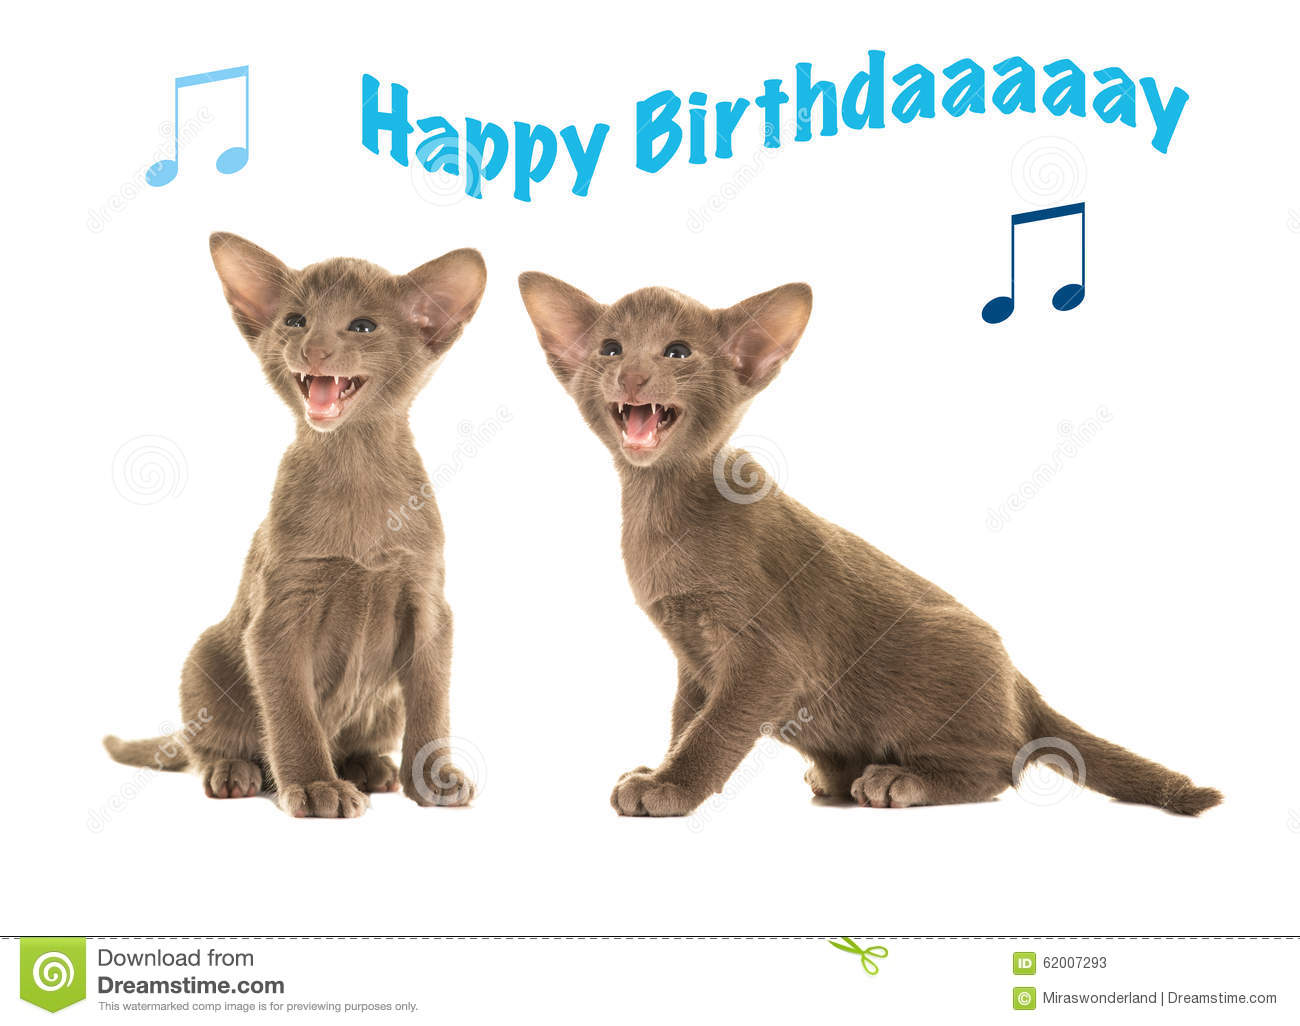 Birthday Card With Siamese Baby Cats Singing Happy Birthday Stock